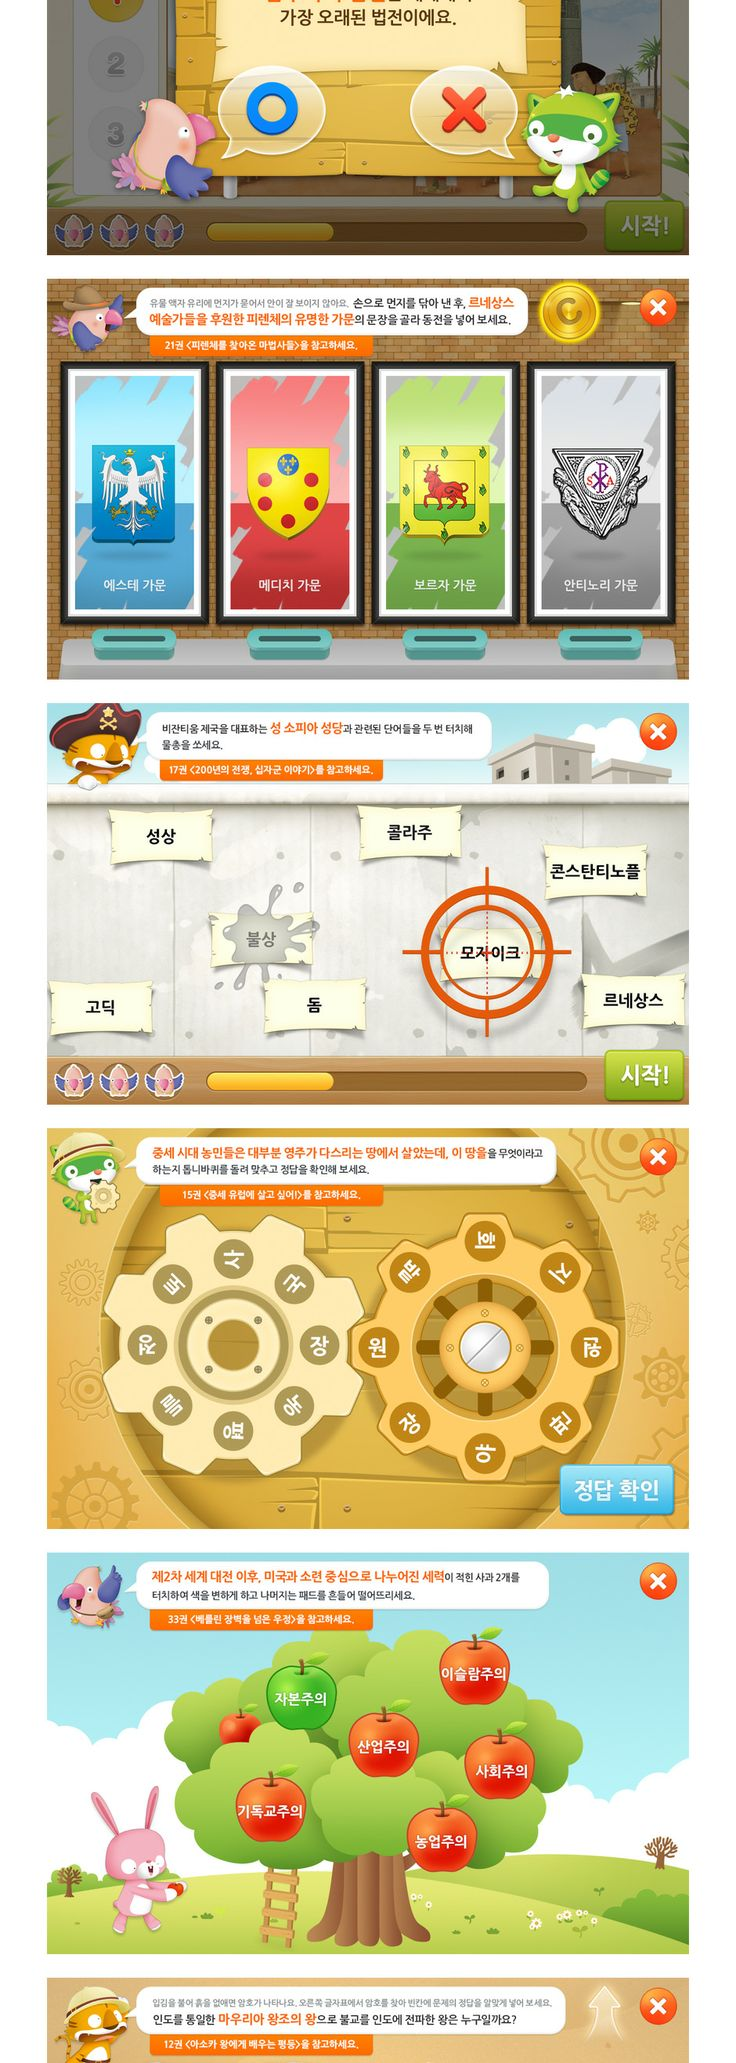 Kyowon World Museum by Knowledge   Layer - 2012_02_world_07